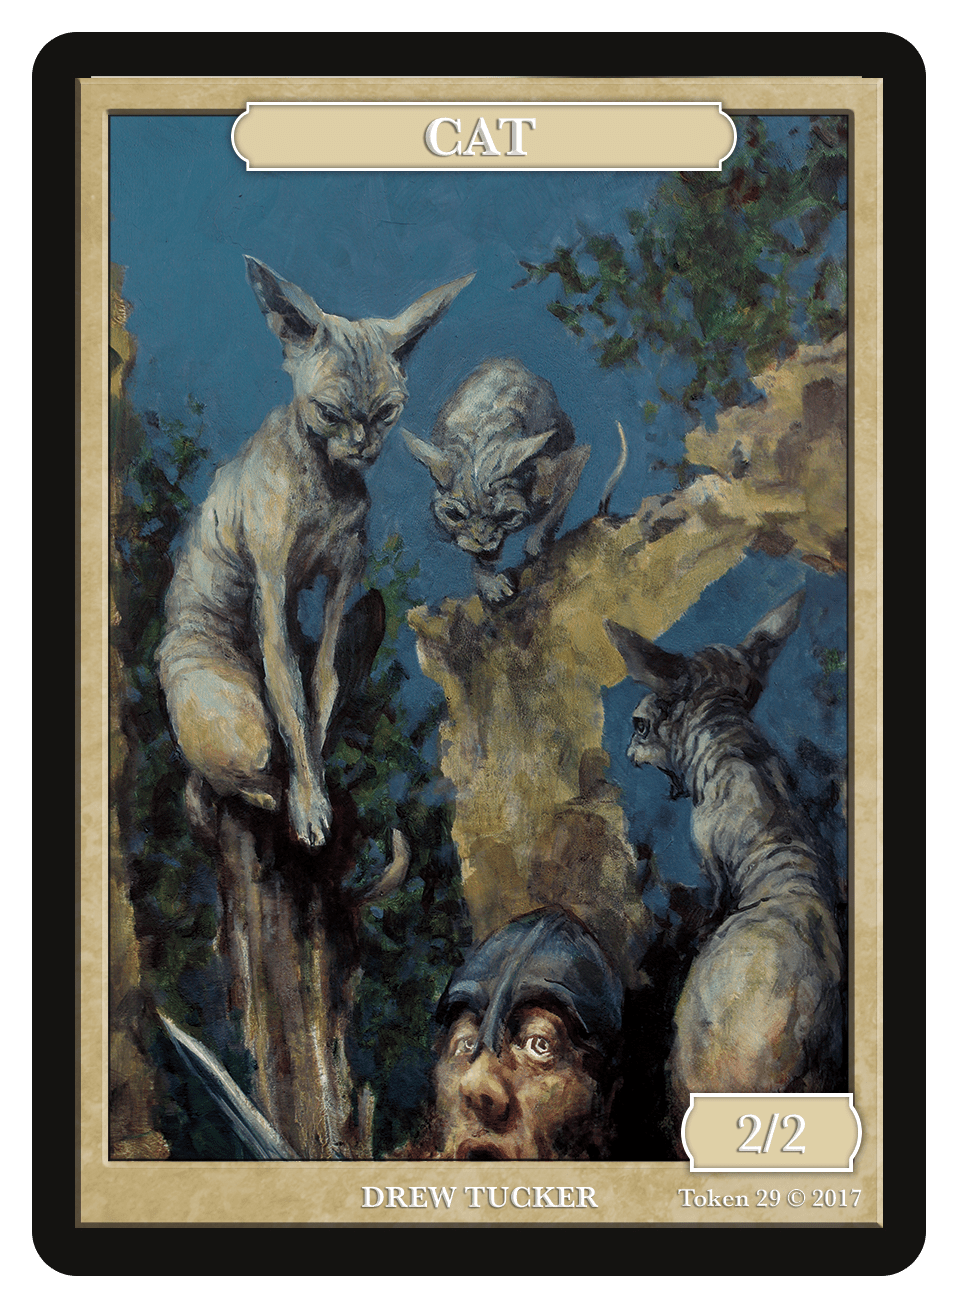 Cat Token (2/2) by Drew Tucker - Token - Original Magic Art - Accessories for Magic the Gathering and other card games